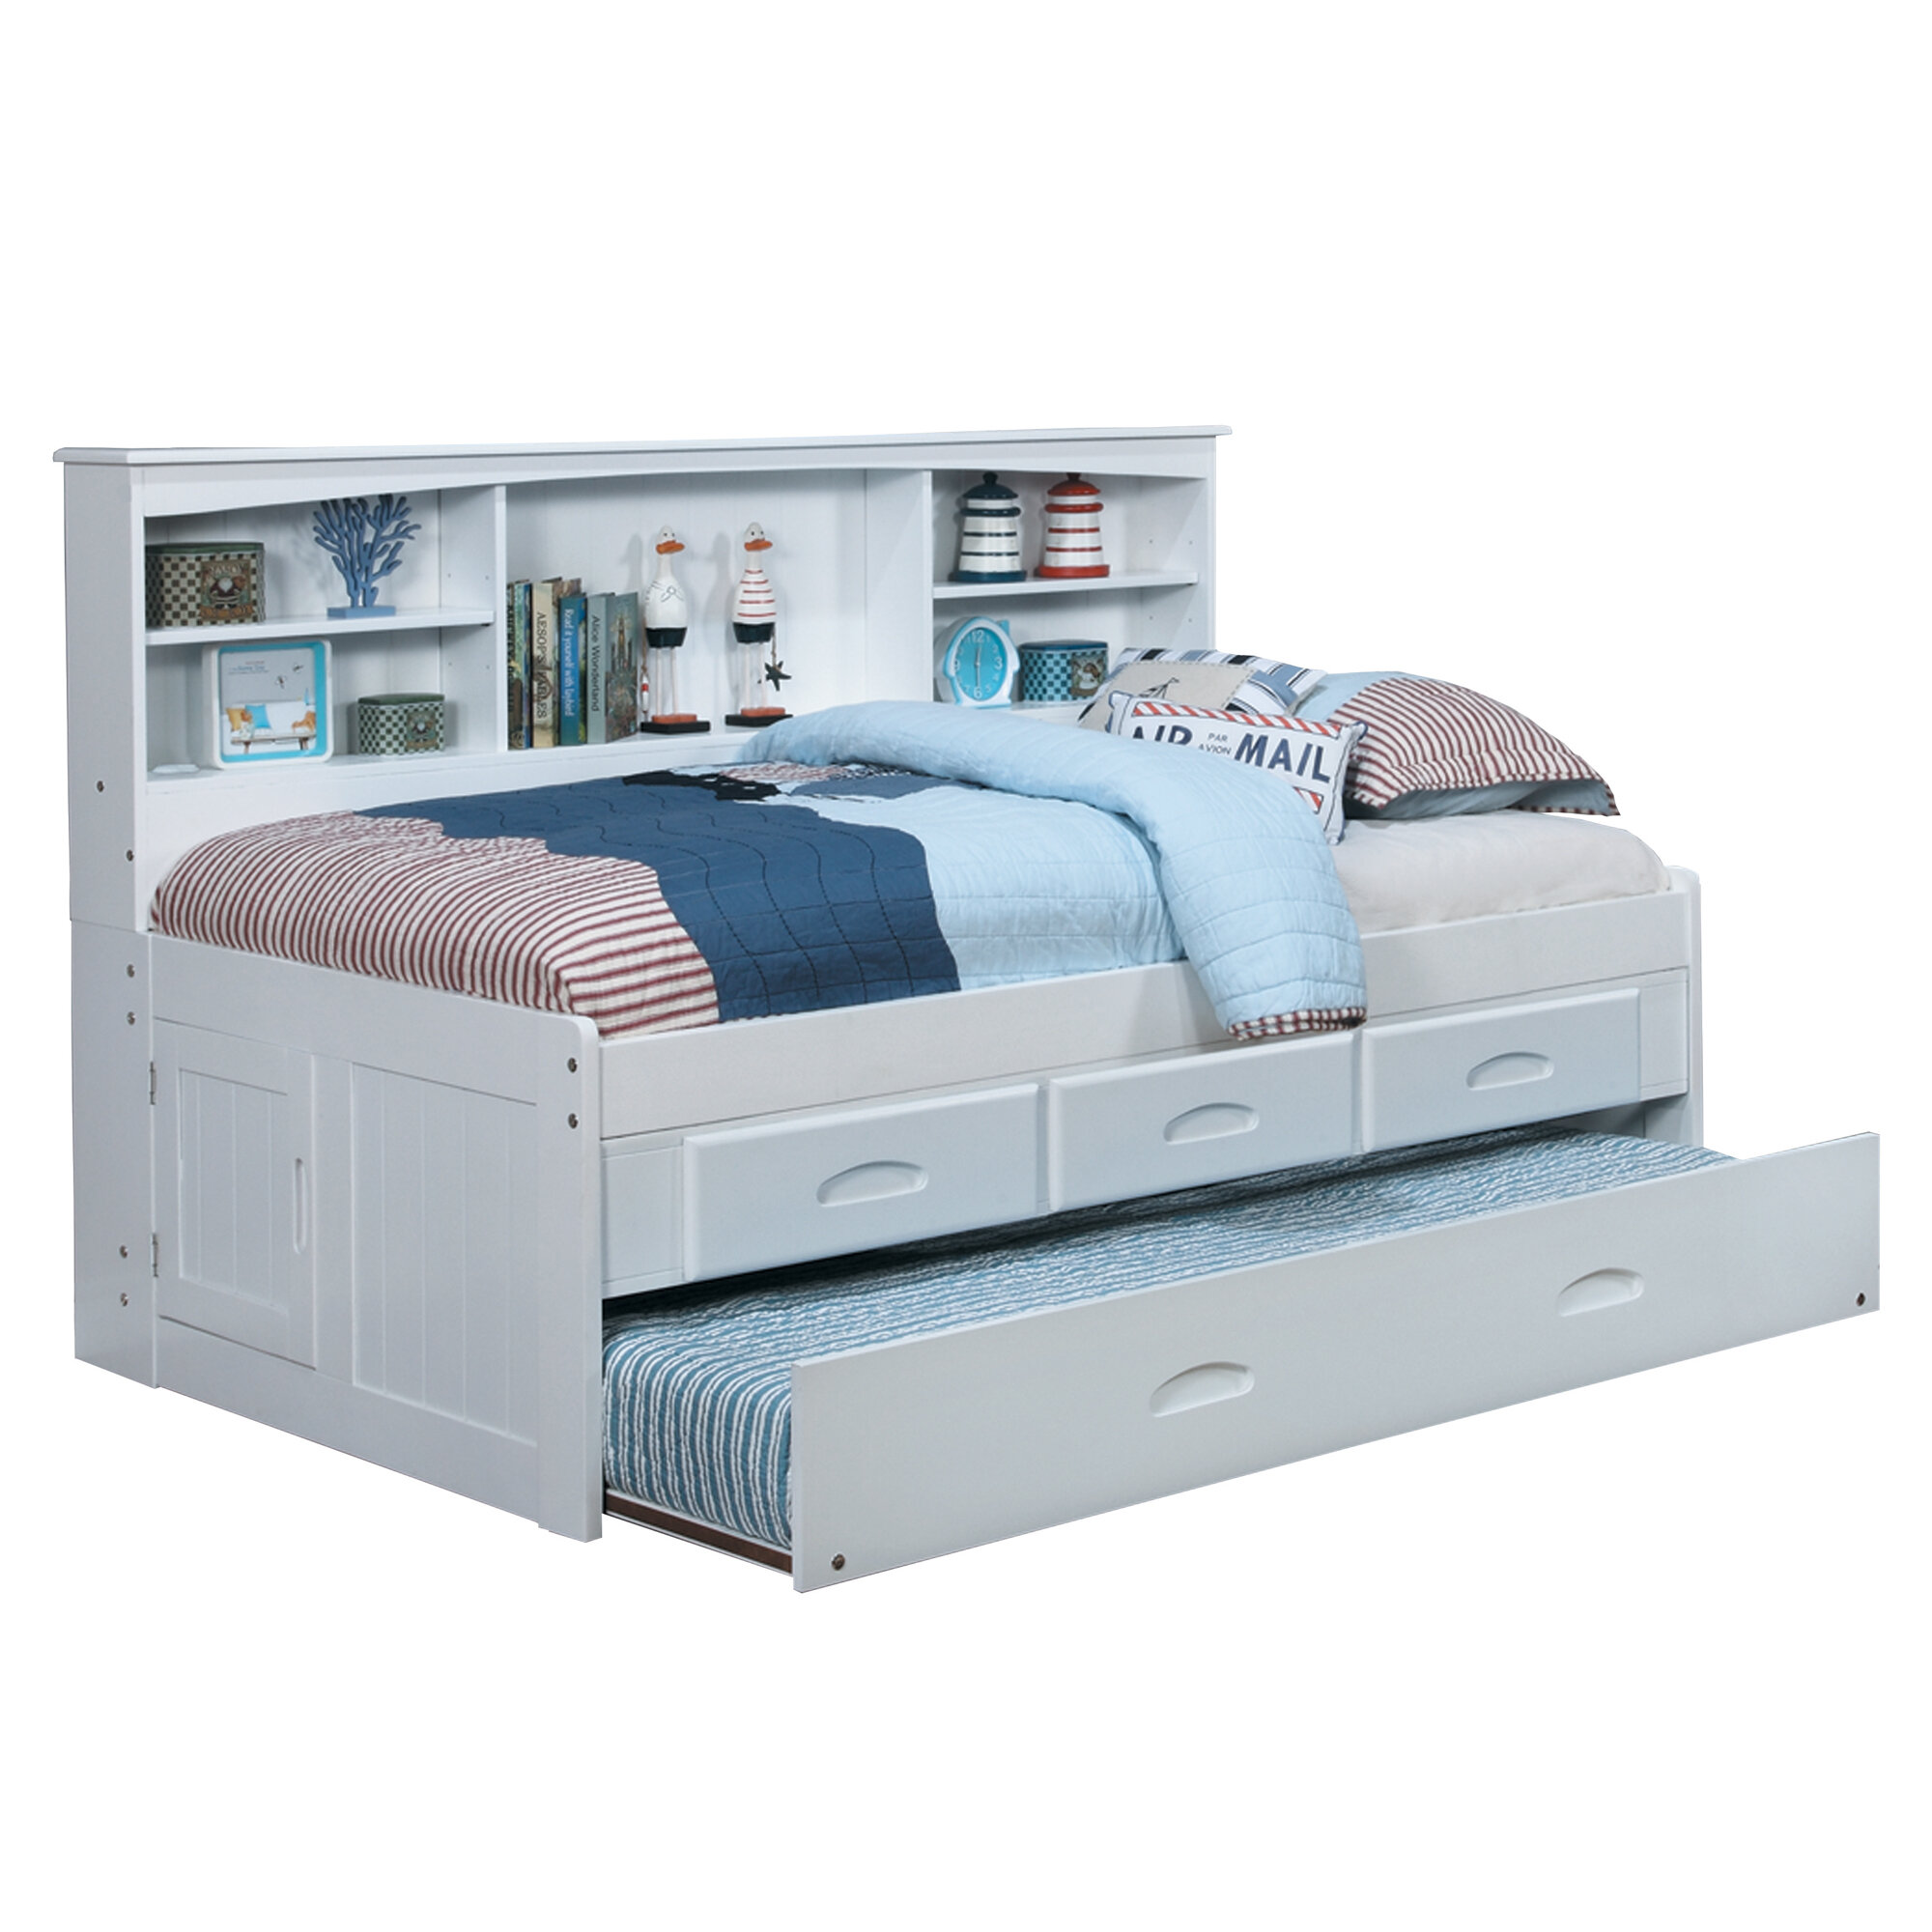 Kaitlyn Mate's & Captain's Bed with Trundle & Reviews | AllModern